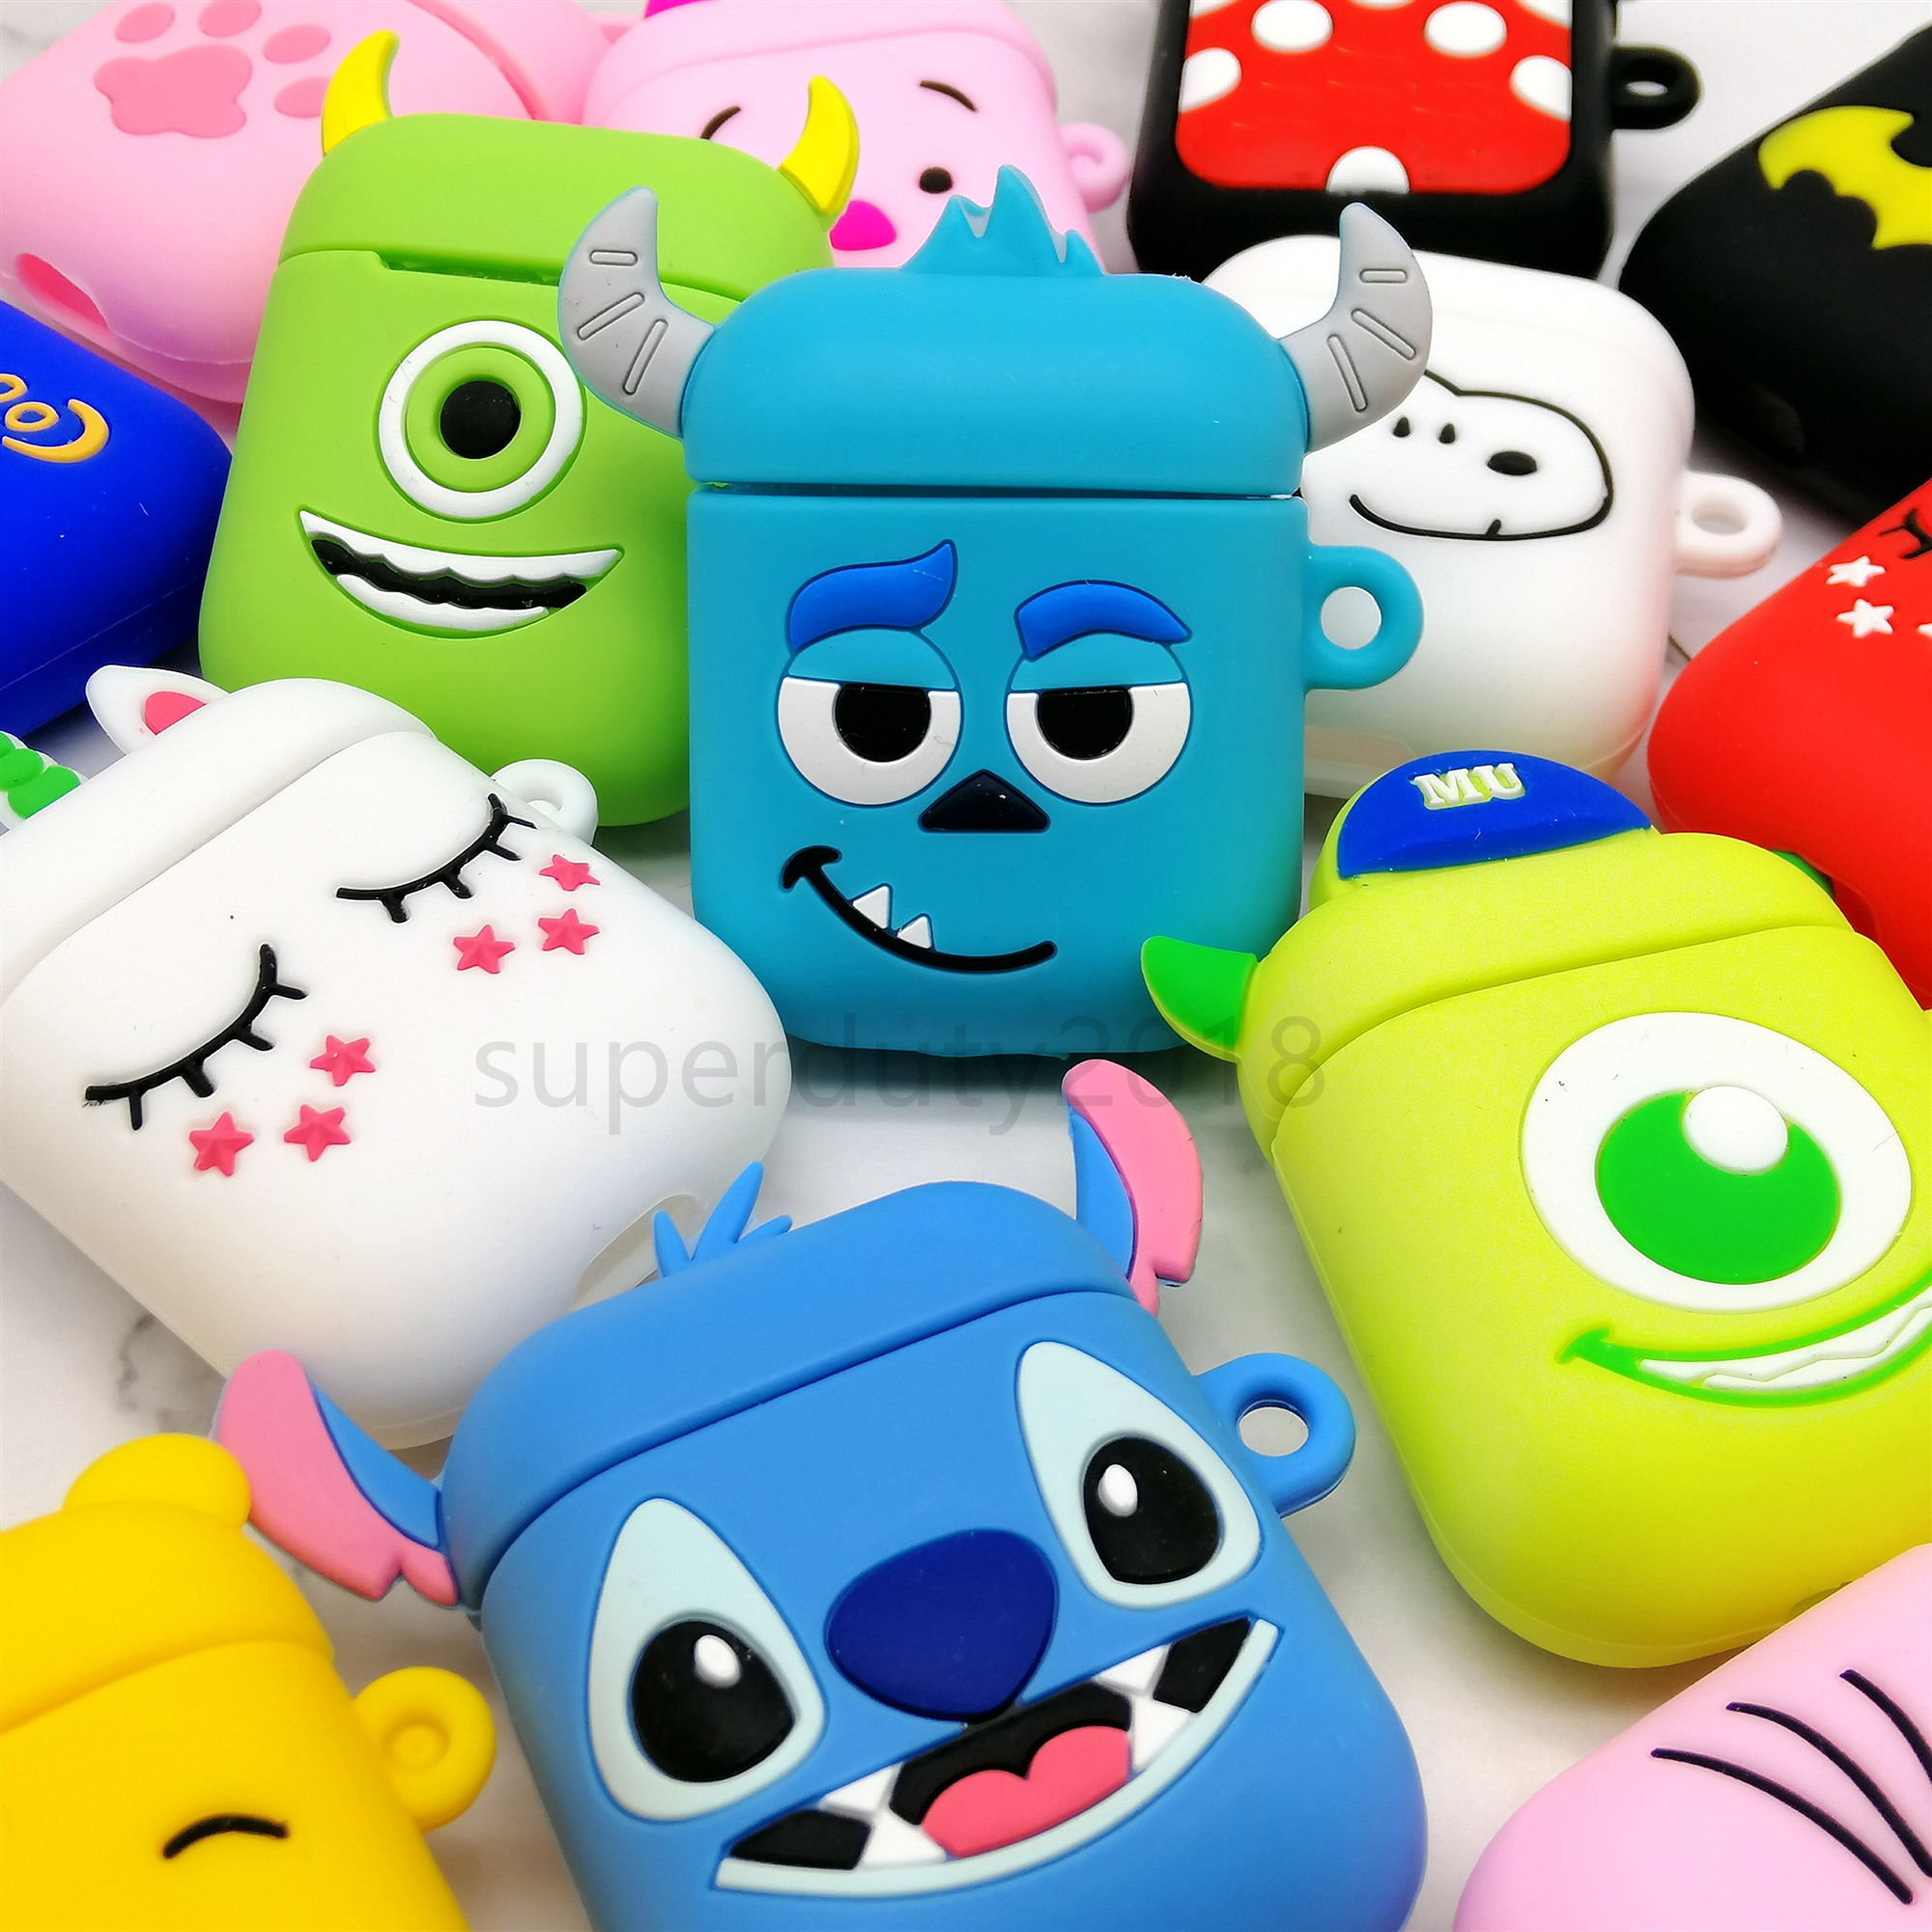 For Airpods 2 Case Silicone Stitch Cartoon Cover case for air pods Cute Earphone Case 3D Headphone case for Earpods Accessories|Earphone Accessories| |  - title=